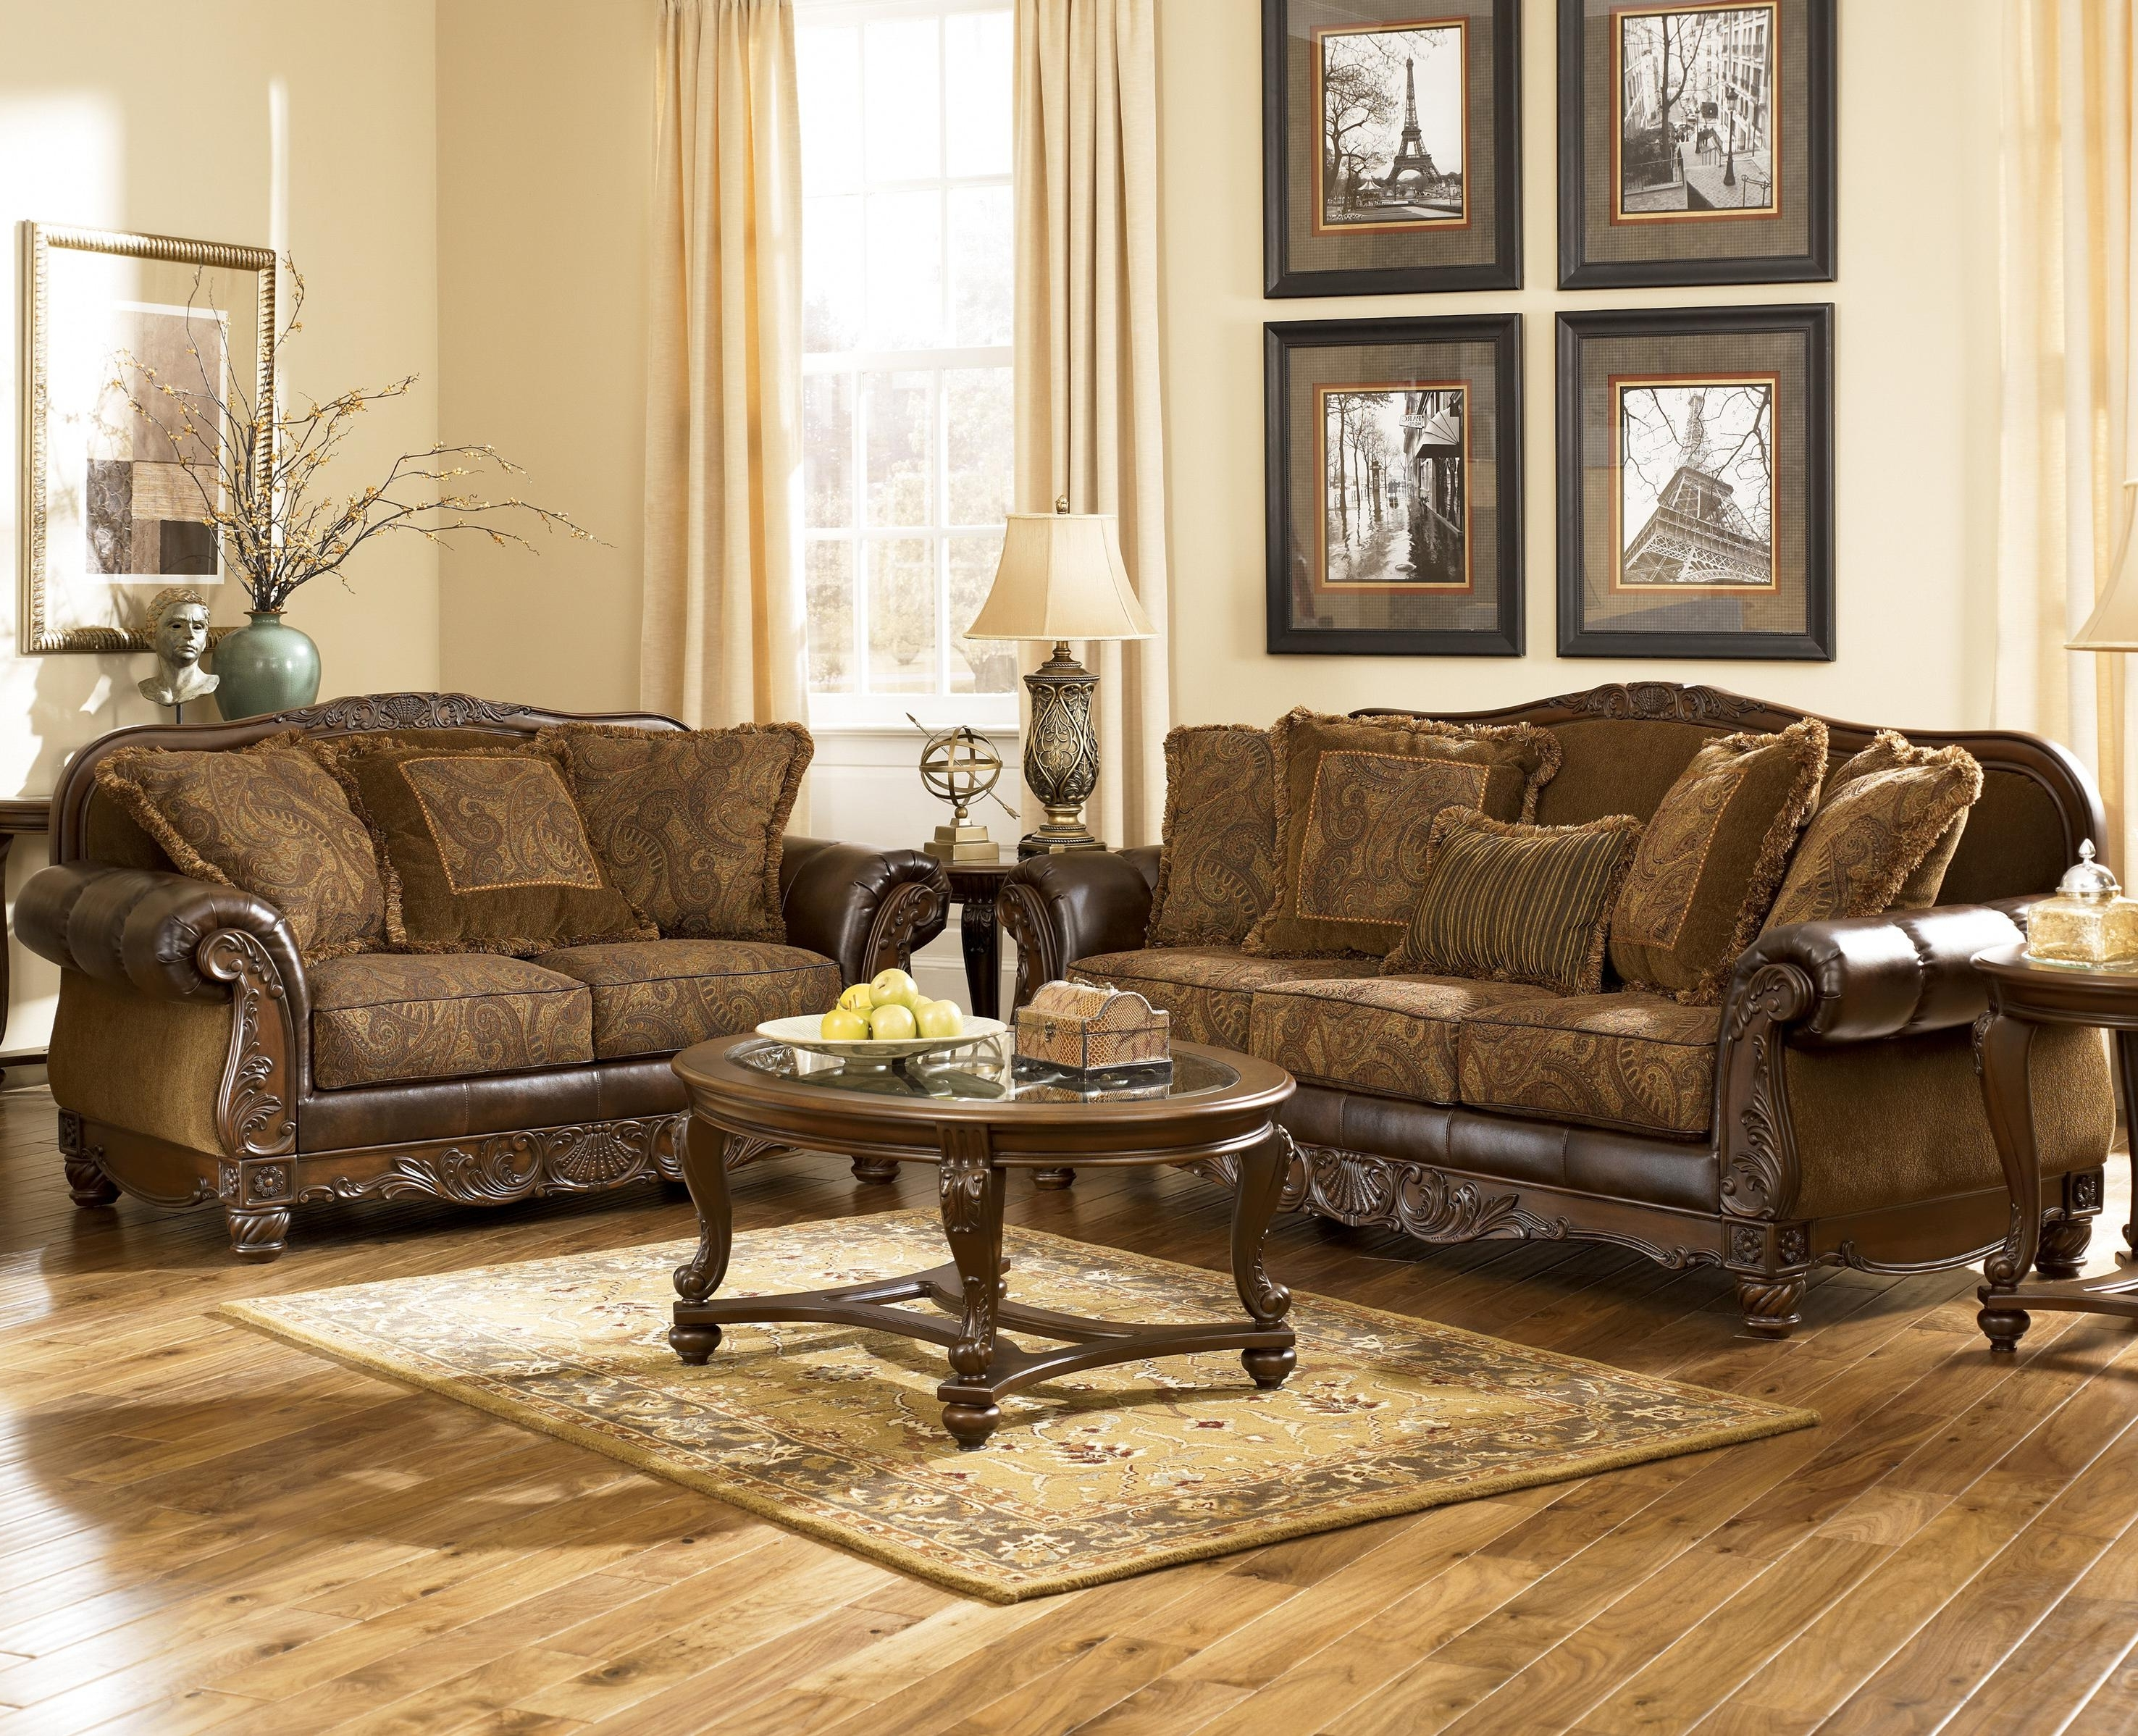 A 9 Furniture Throughout Most Recent Tallahassee Sectional Sofas (View 2 of 20)